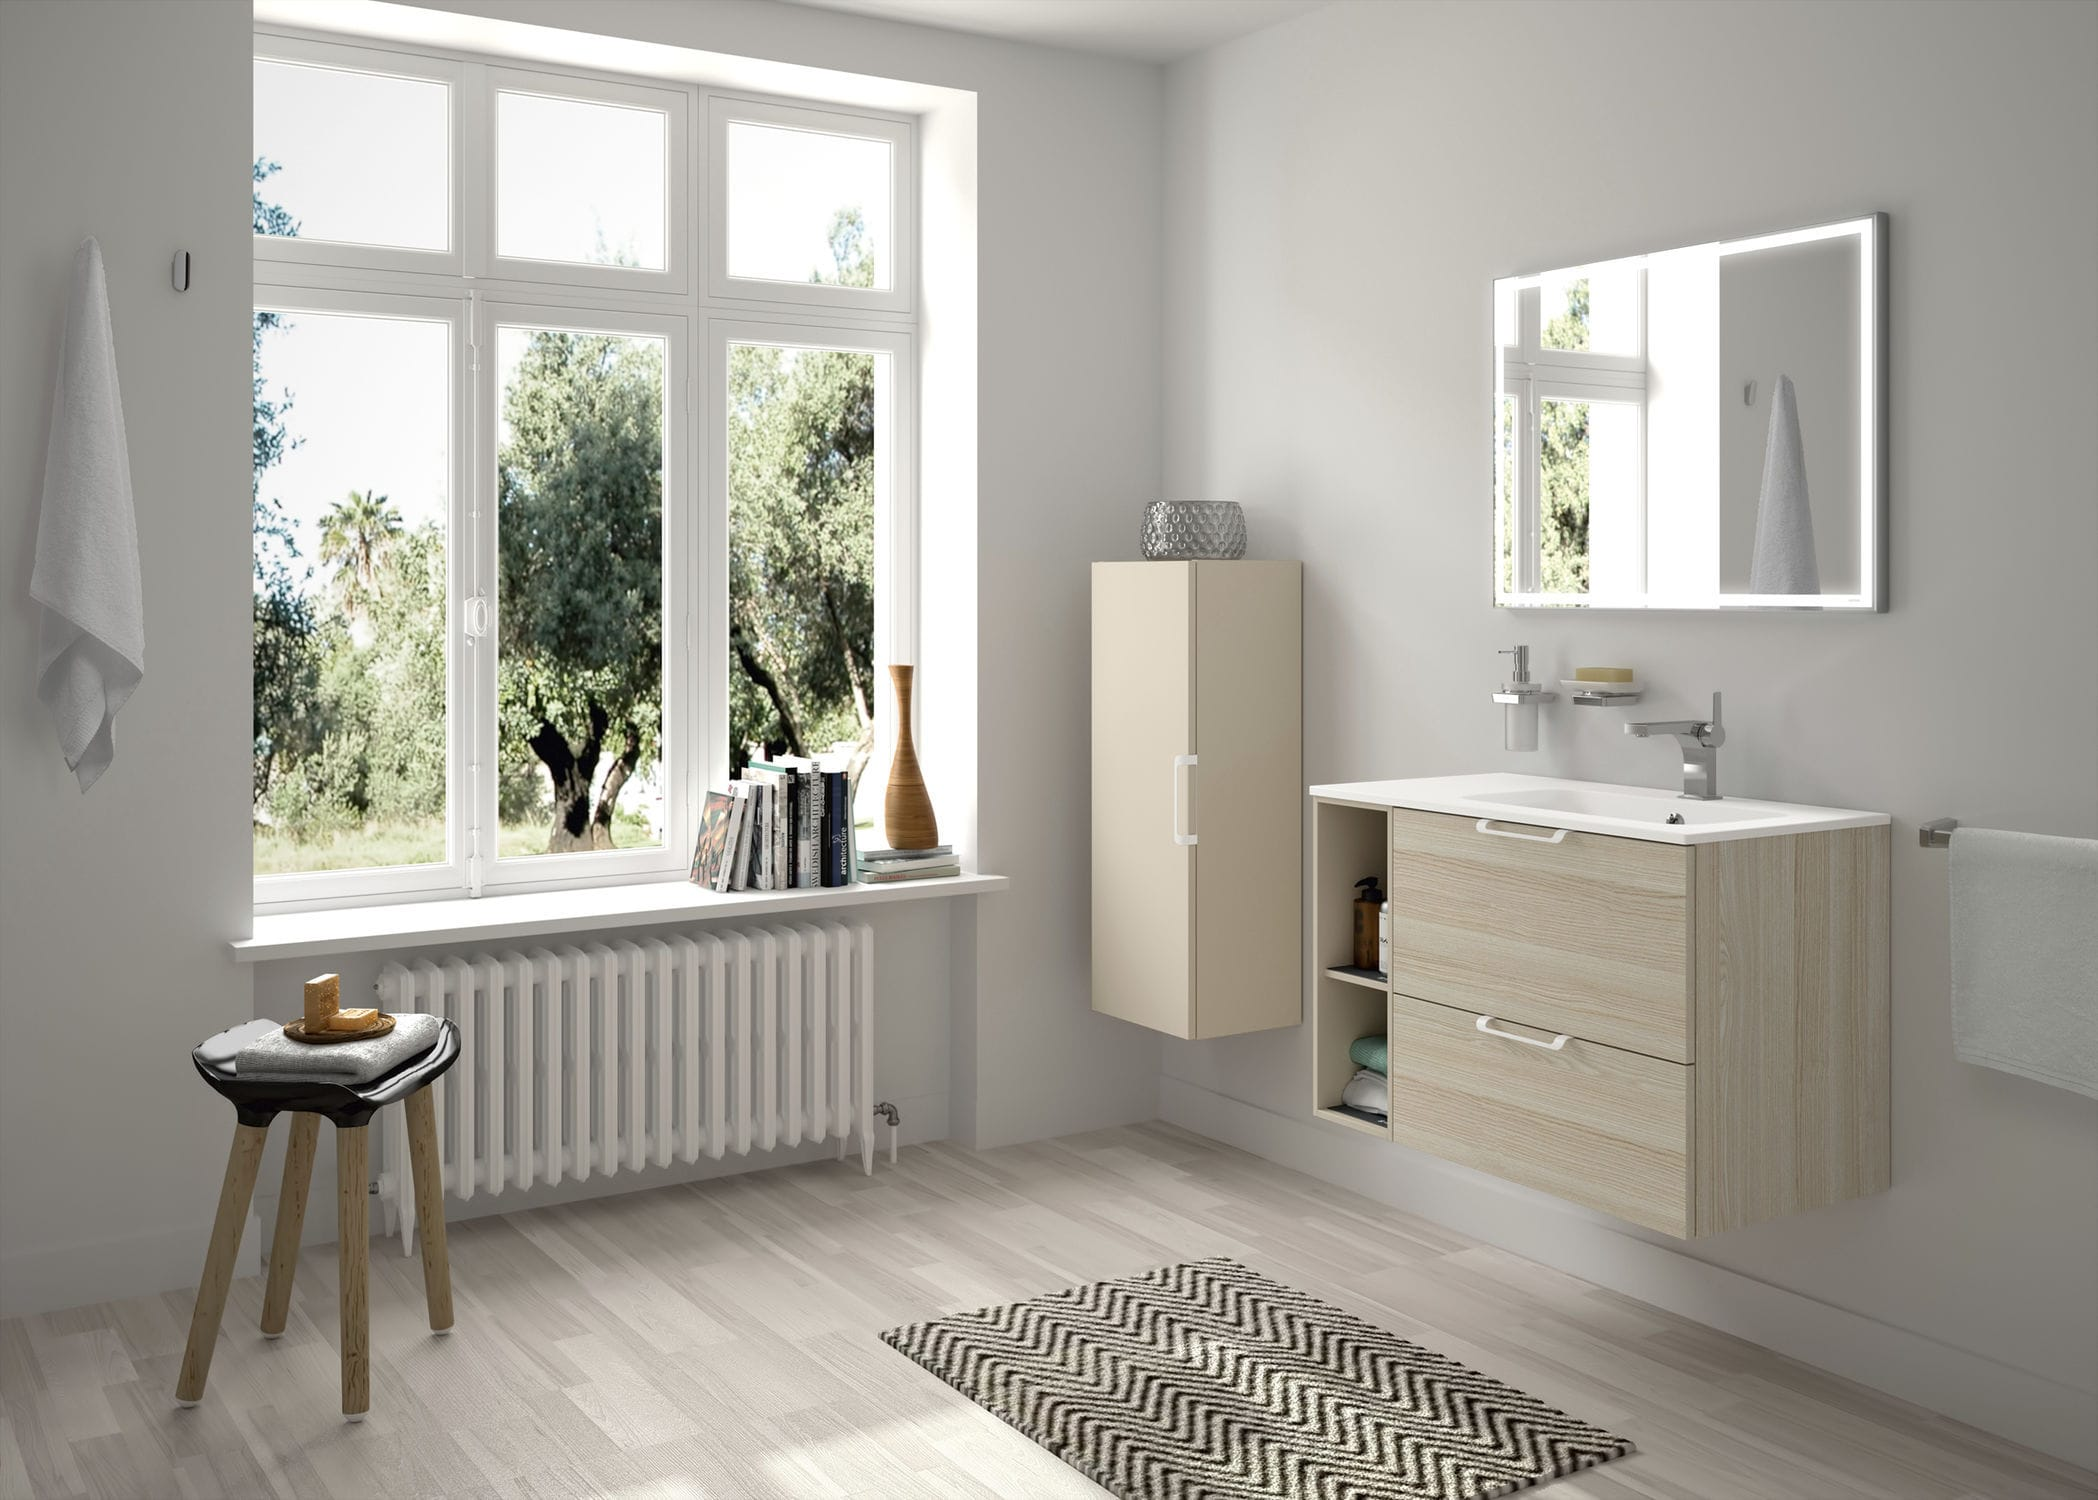 Modular shelf contemporary laminate bathroom EVOLVE